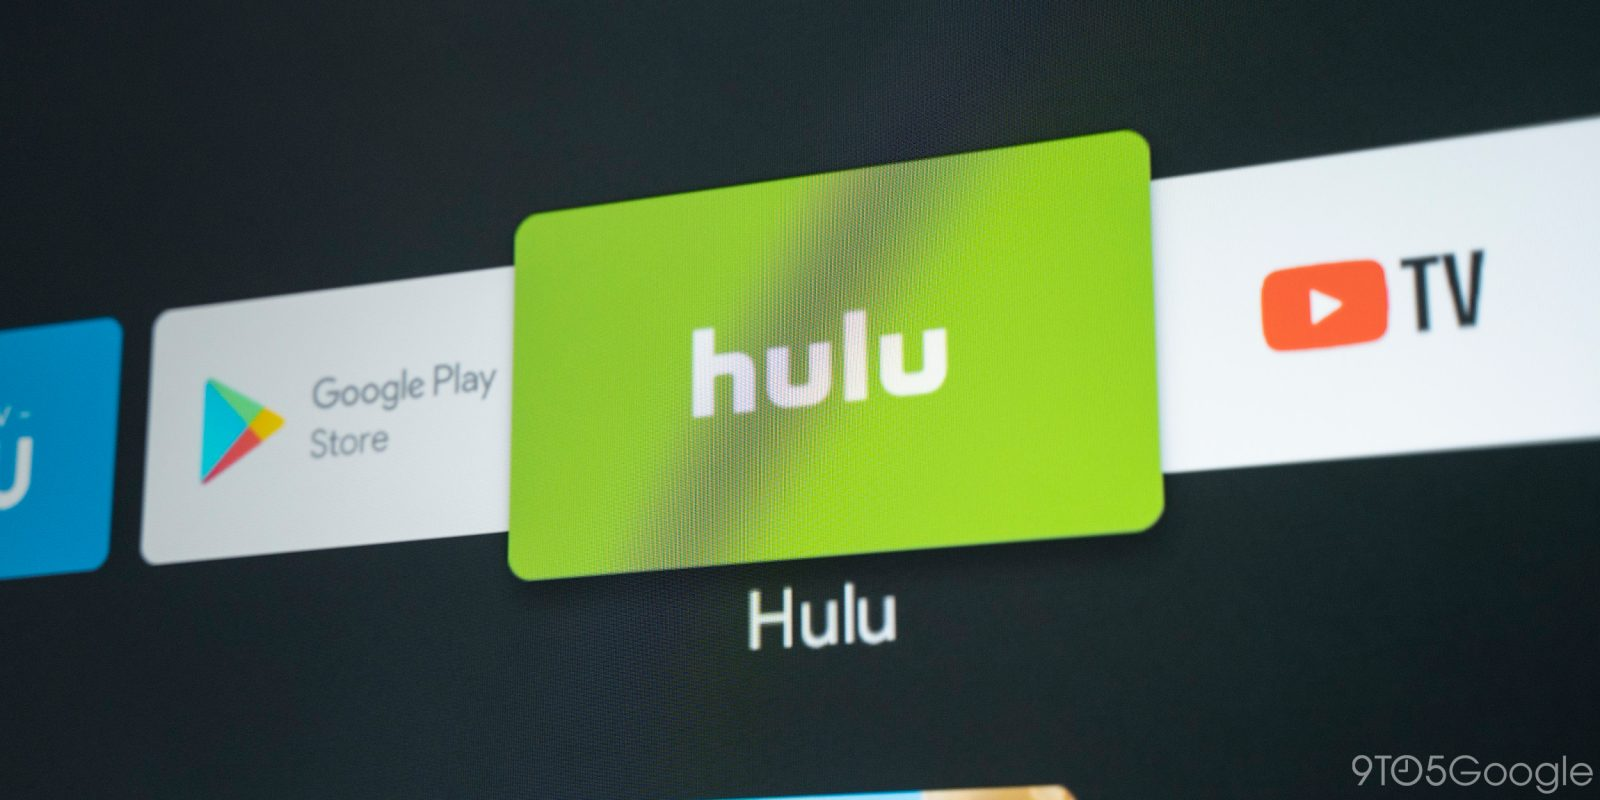 Hulu is updating its Android TV app w/ Live TV, new UI